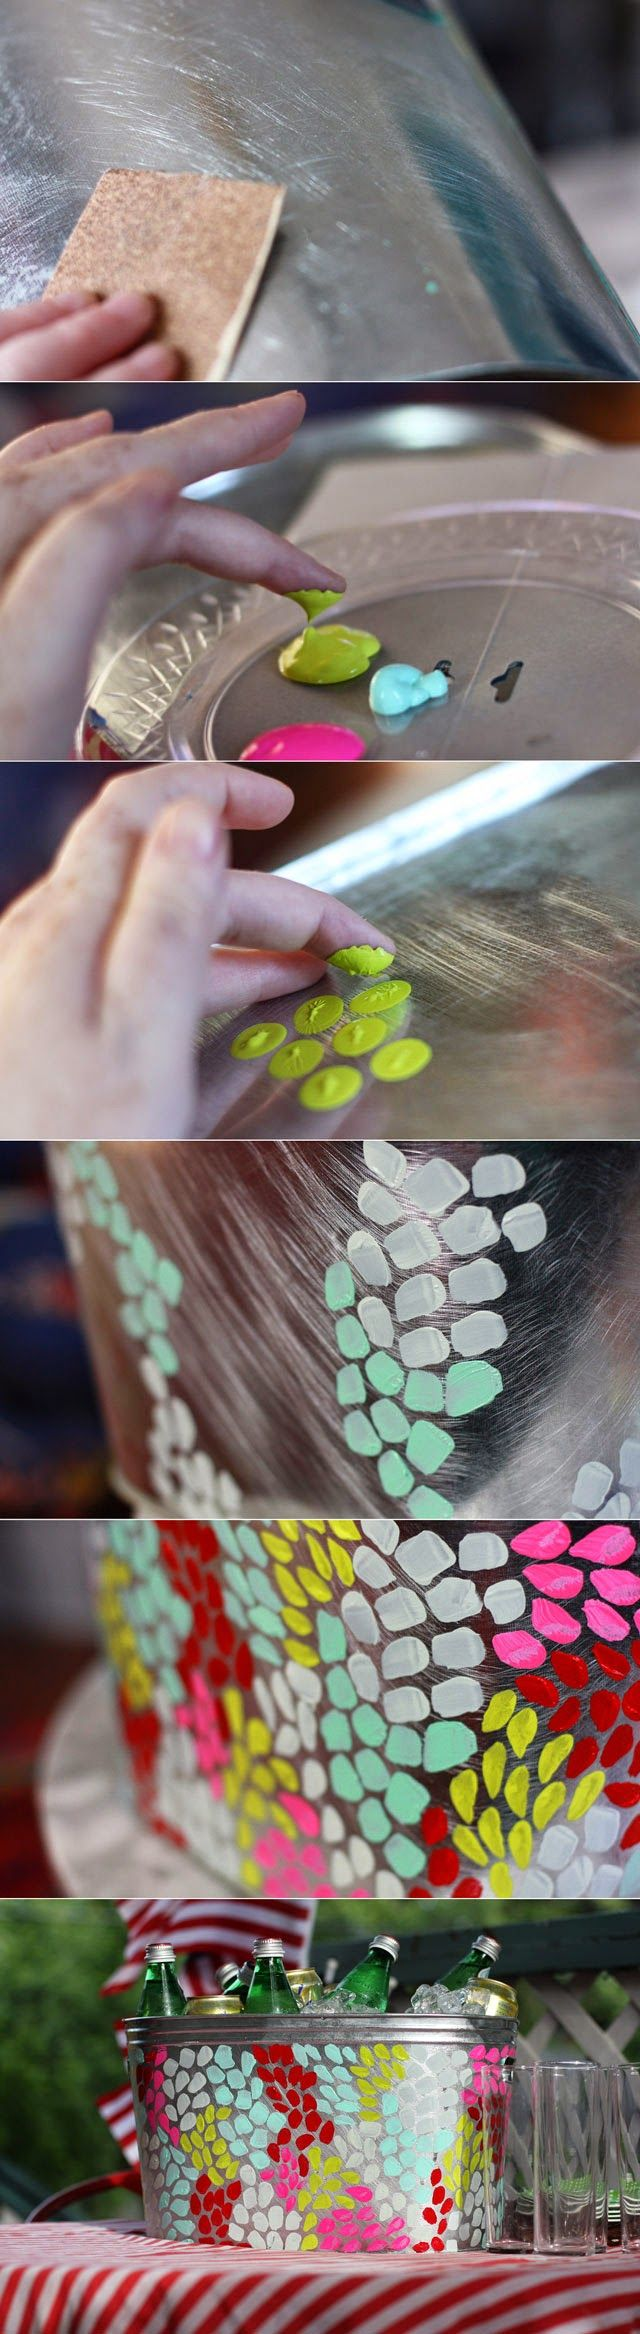 : Use fingerprints and paint to decorate metal tub.